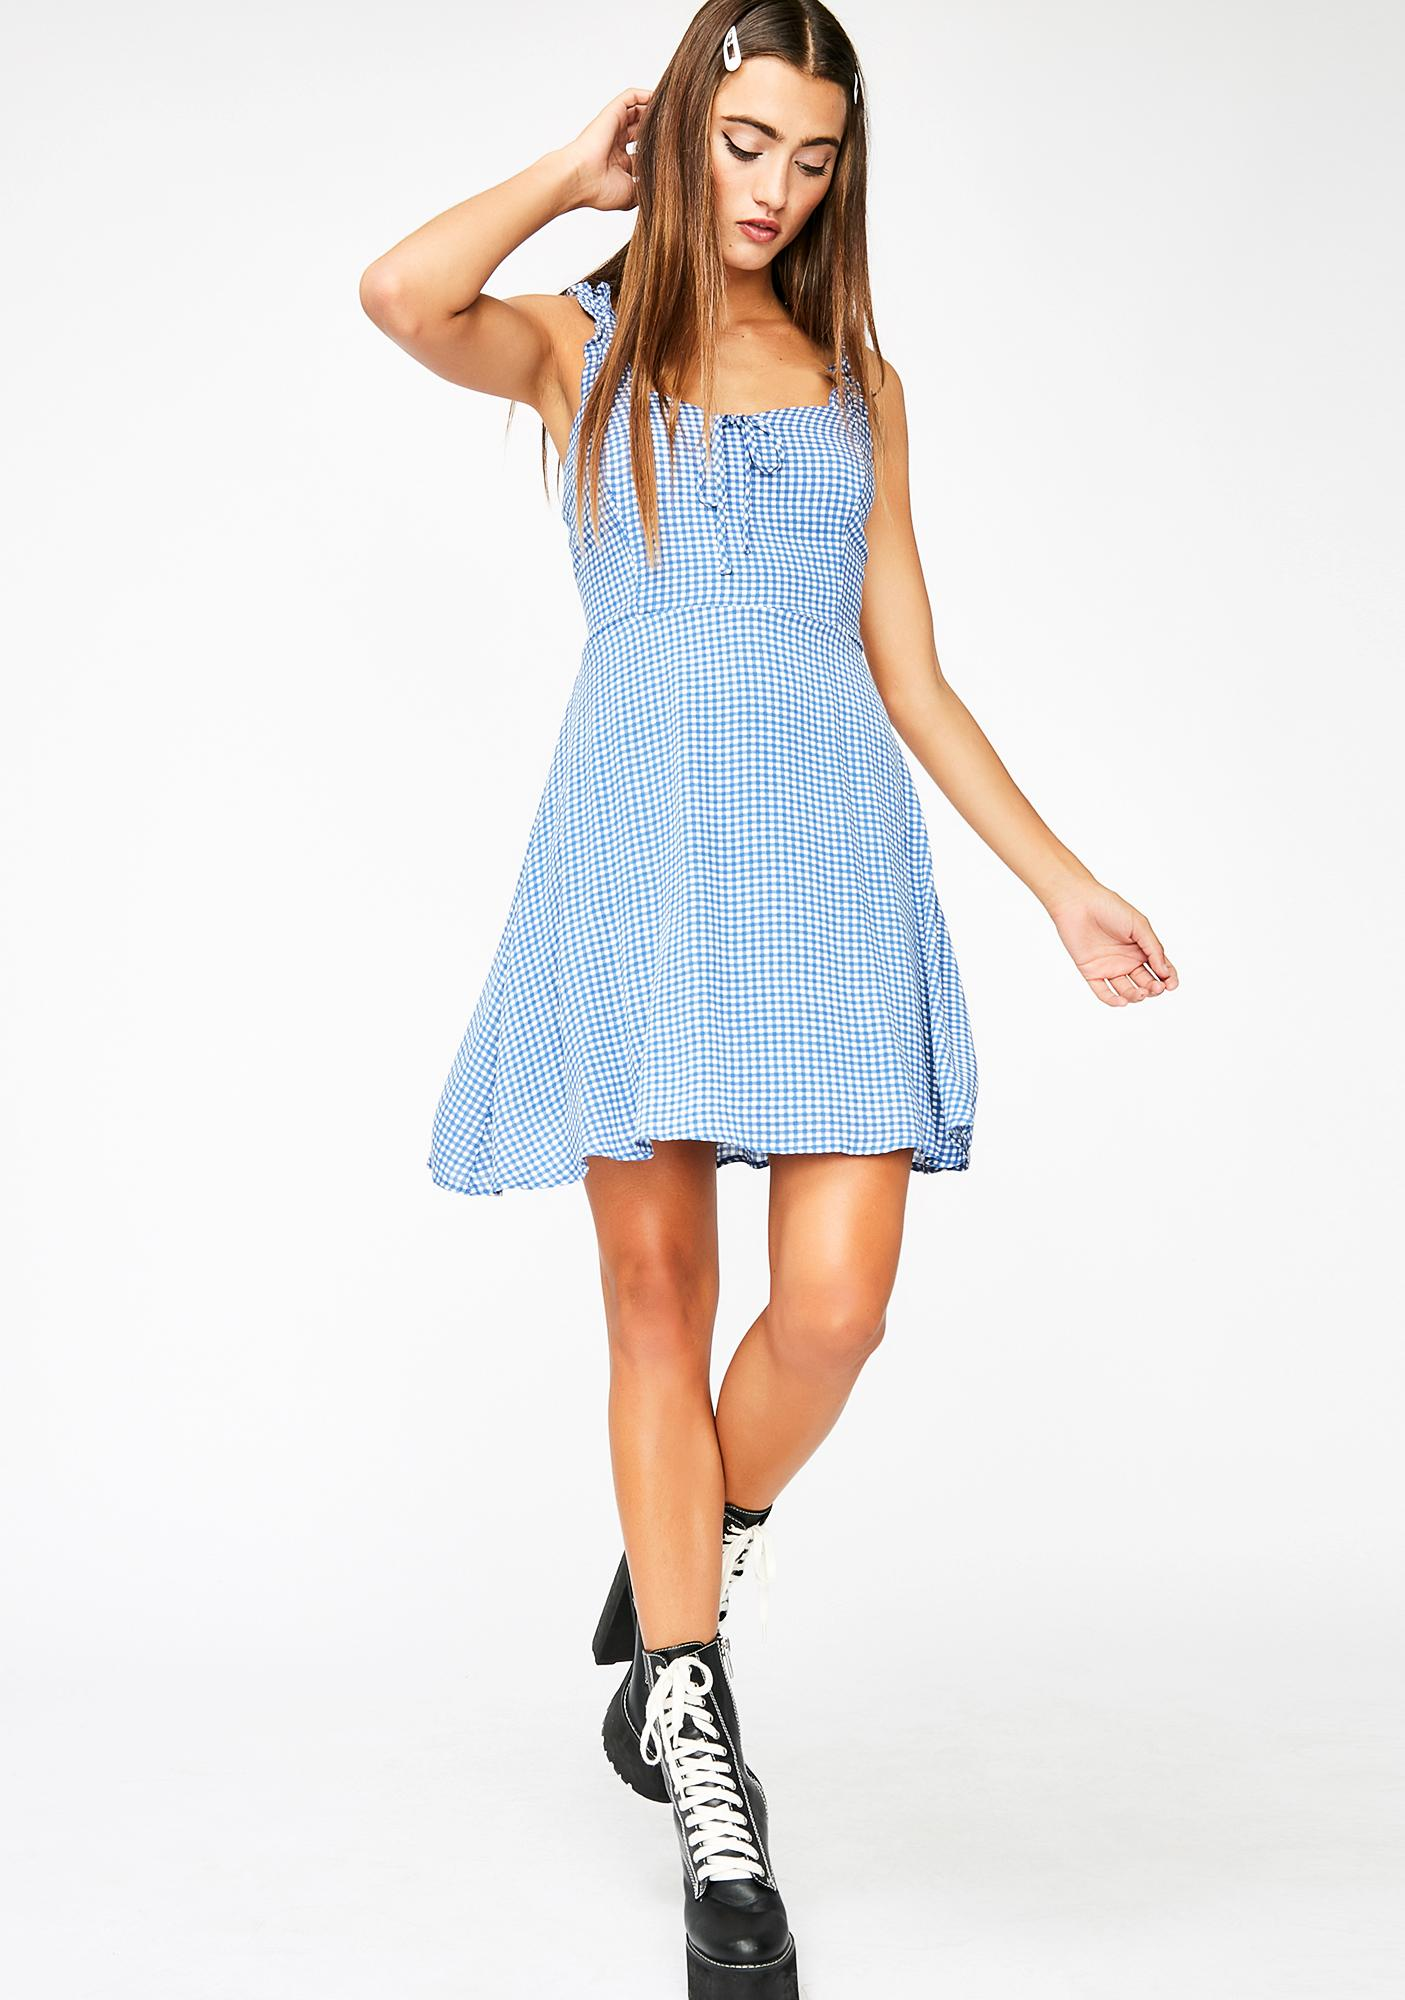 Sunshine BB Gingham Dress